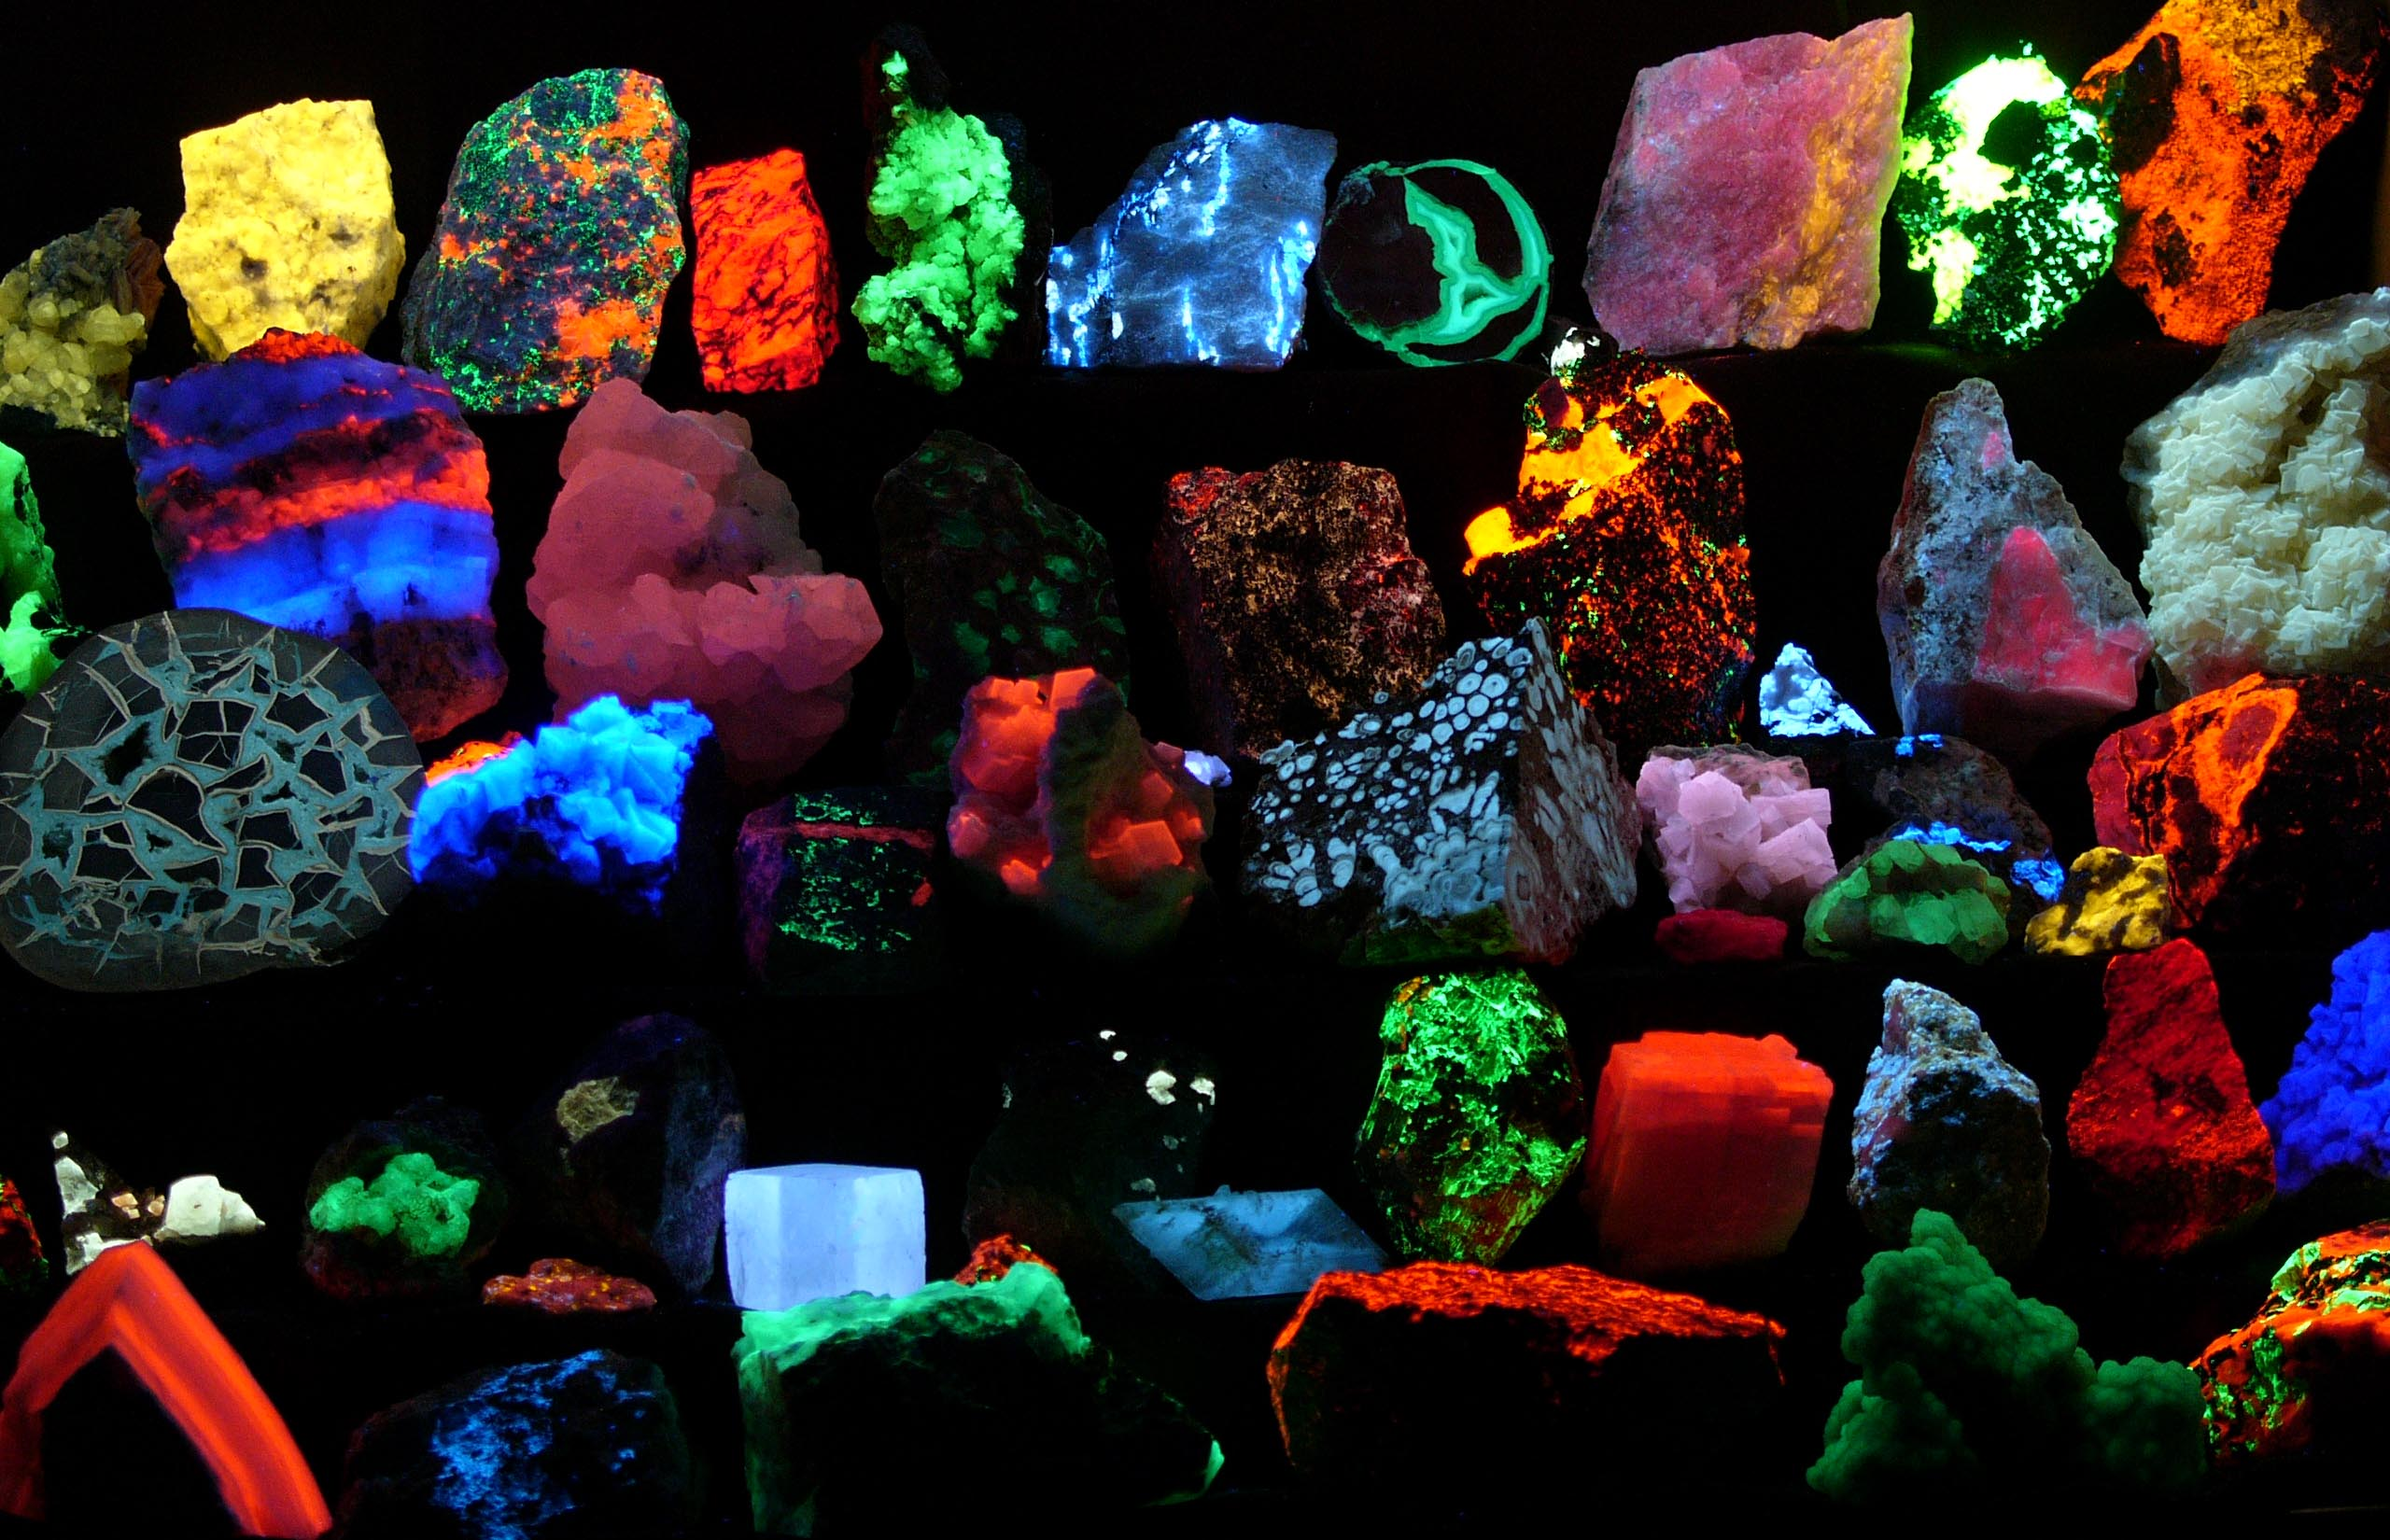 Collection of various fluorescent minerals under ultraviolet UV-A, UV-B and UV-C light. Image Credit: Hannes Grobe/AWI